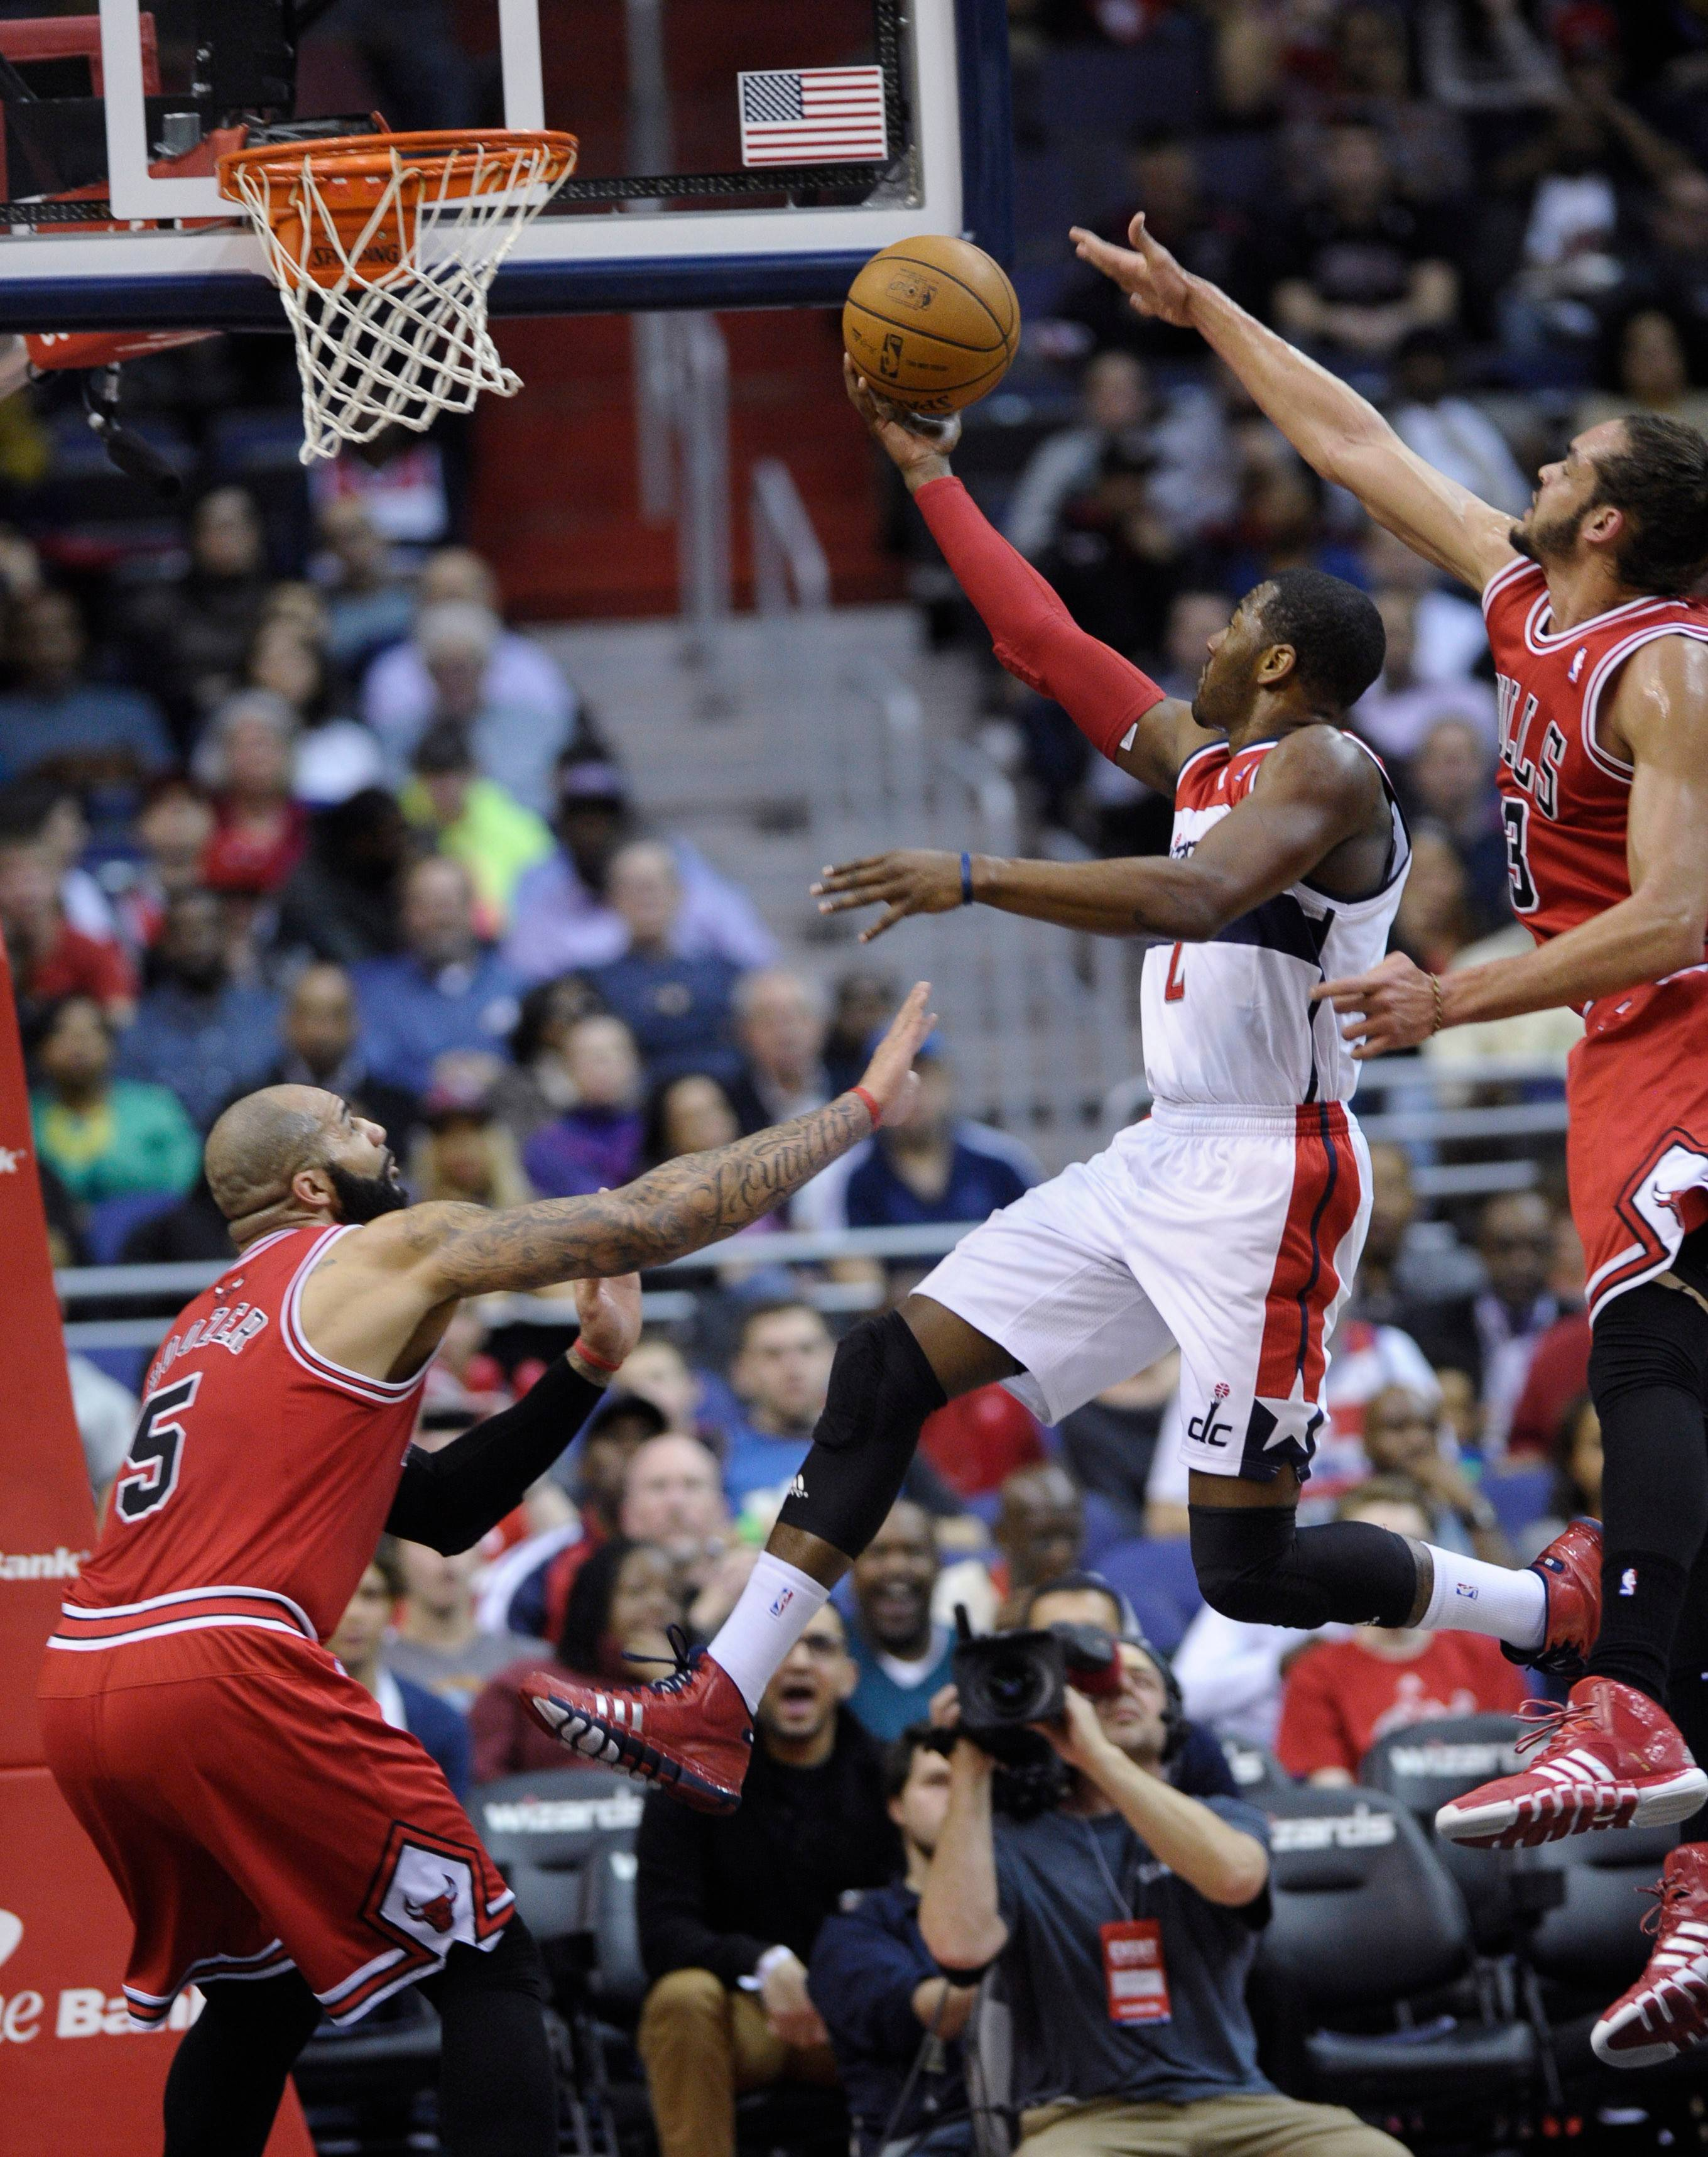 Washington Wizards guard John Wall, center, goes up for a shot under pressure from Chicago Bulls forward Carlos Boozer (5) and center Joakim Noah, right, during the first quarter of an NBA basketball game in Washington, Friday, Jan. 17, 2014.